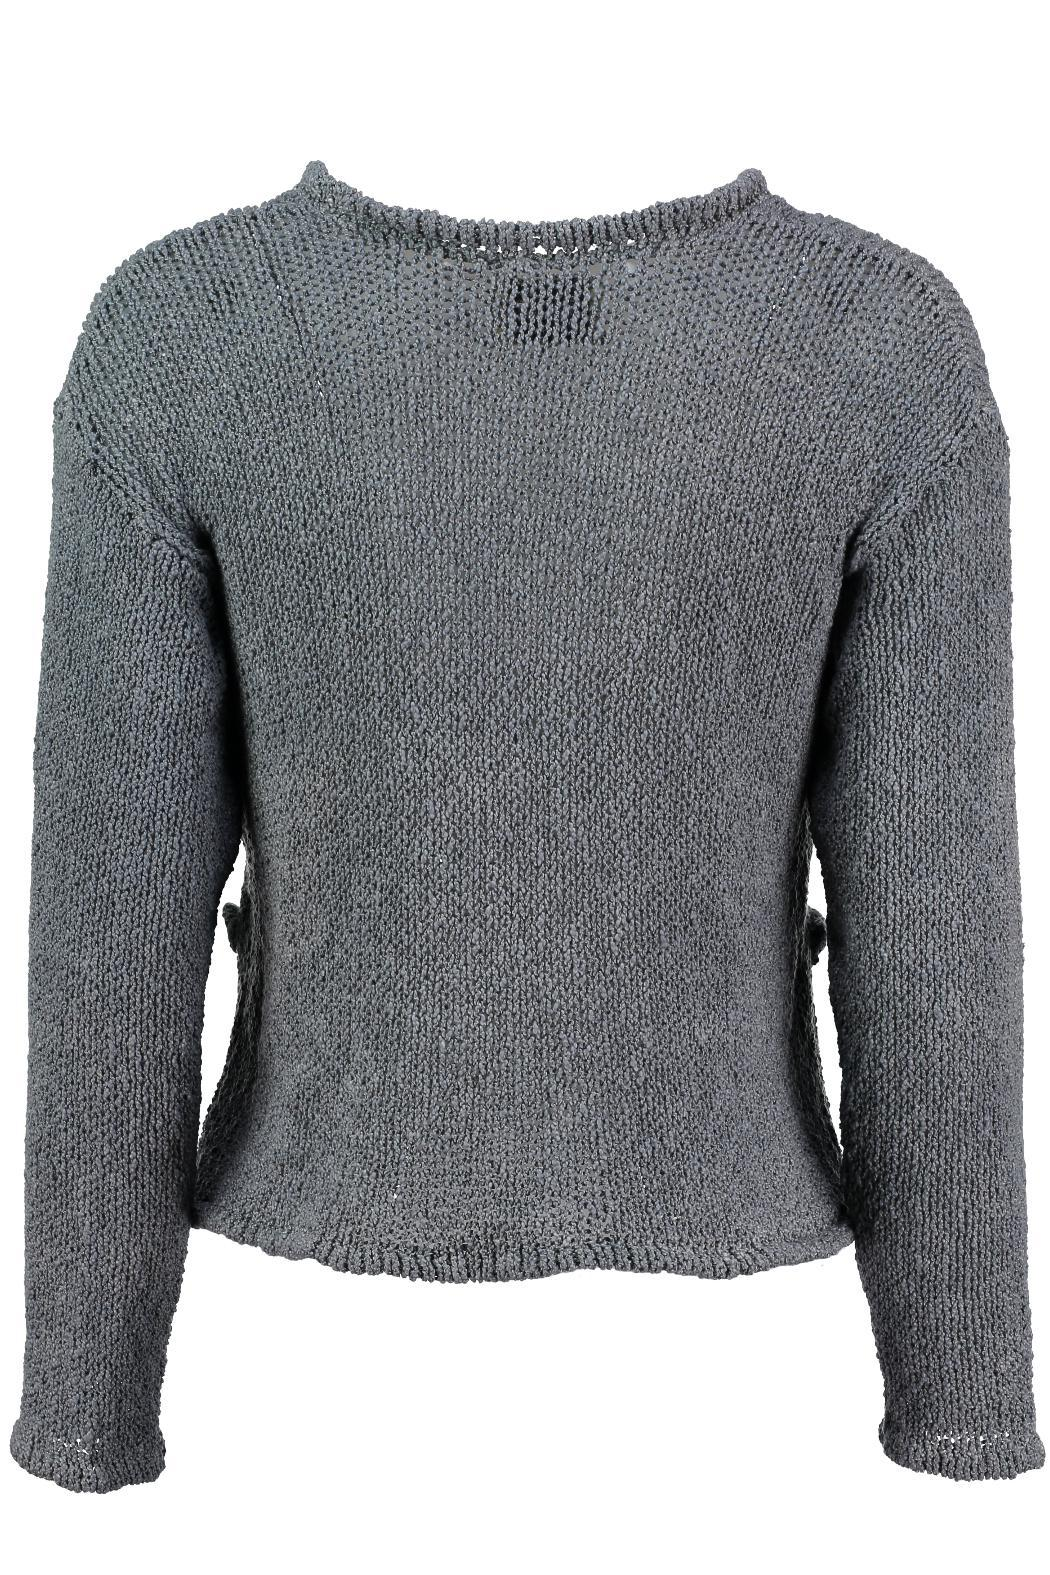 Scarecrow Grey Cotton Cardigan - Front Full Image